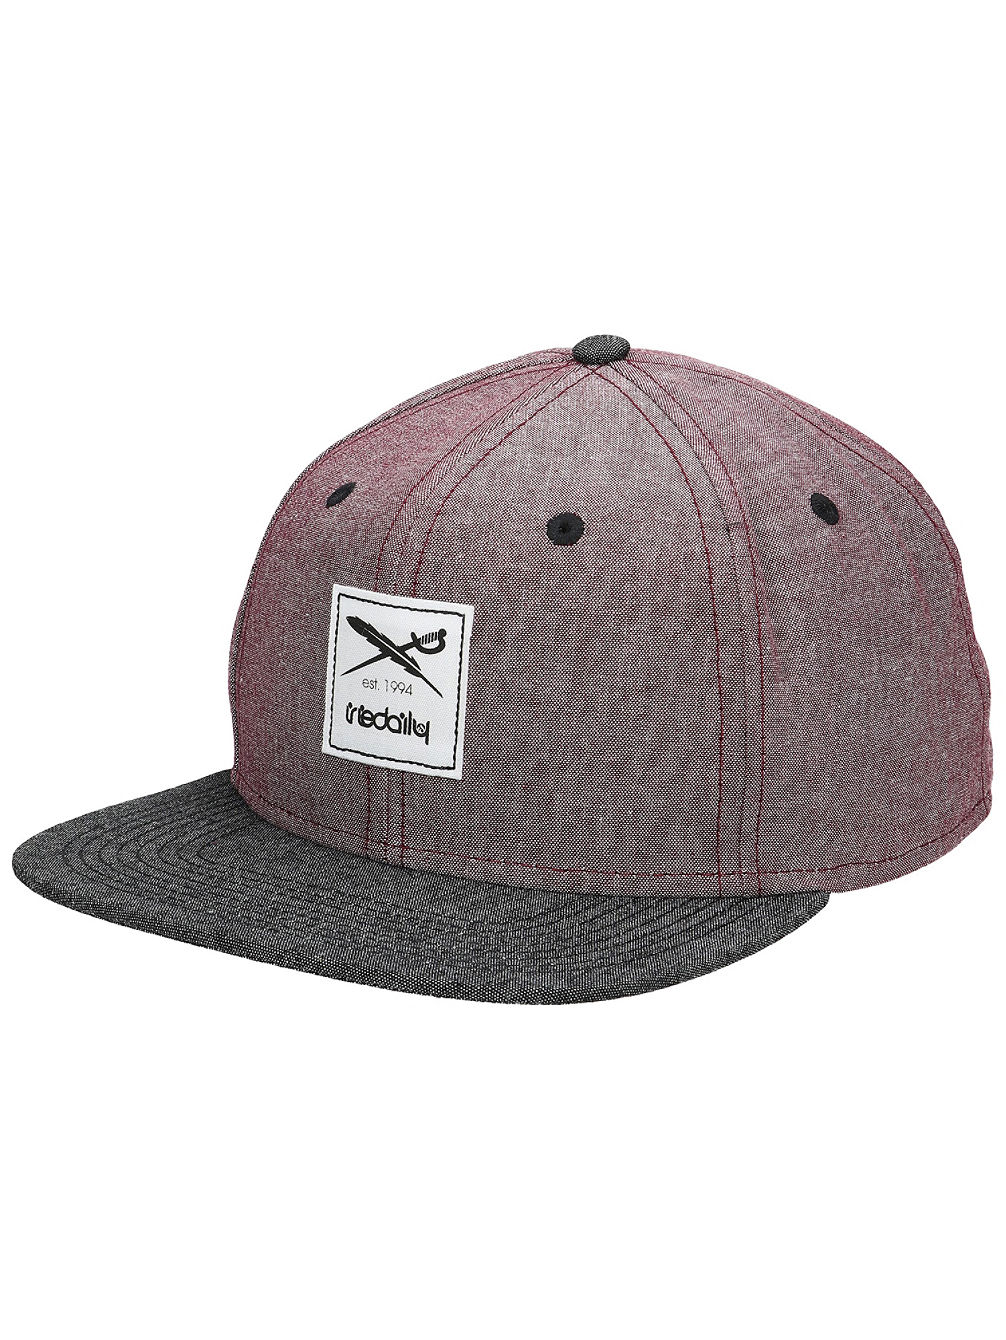 Flag Chambray Snapback Cap